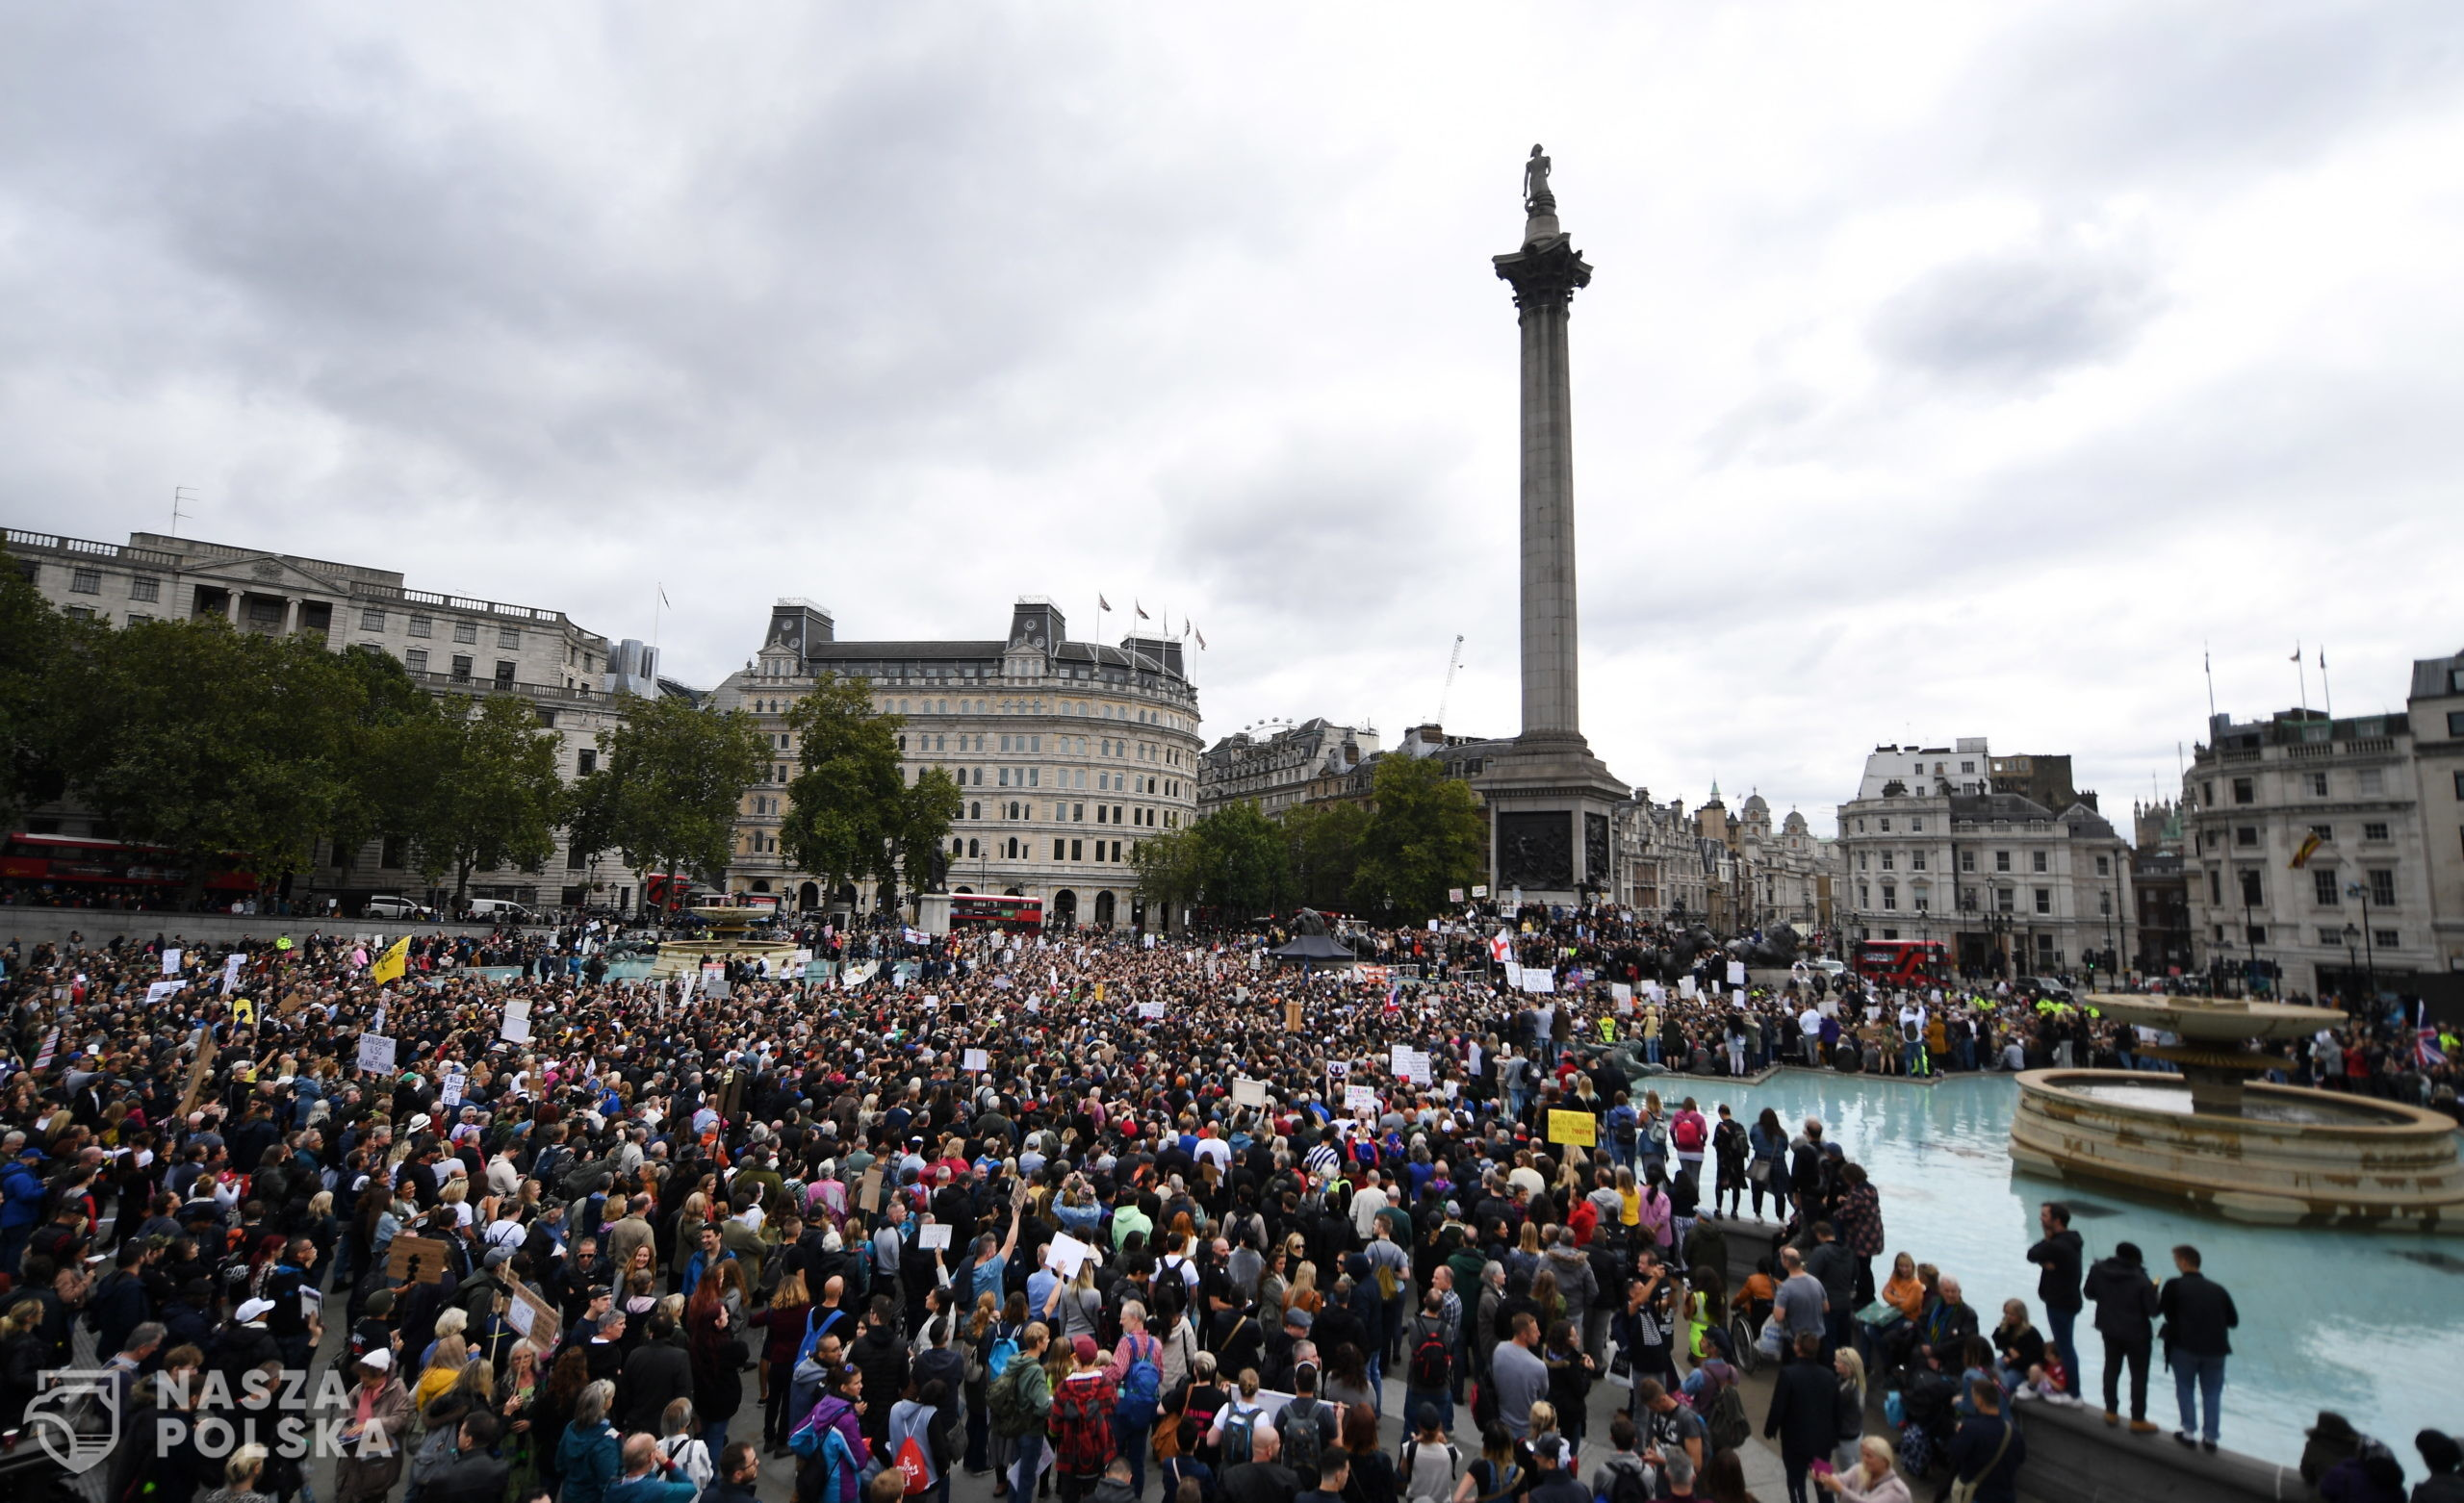 epa08633426 Thousands of people protest at Trafalgar Square against the Coronavirus lockdown in London, Britain, 29 August 2020. Protesters demonstrated against the wearing of masks, government proposed vaccines, and lockdowns. Protesters claim that Covid-19 is a hoax enabling governments to exert control over the masses.  EPA/ANDY RAIN  Dostawca: PAP/EPA.